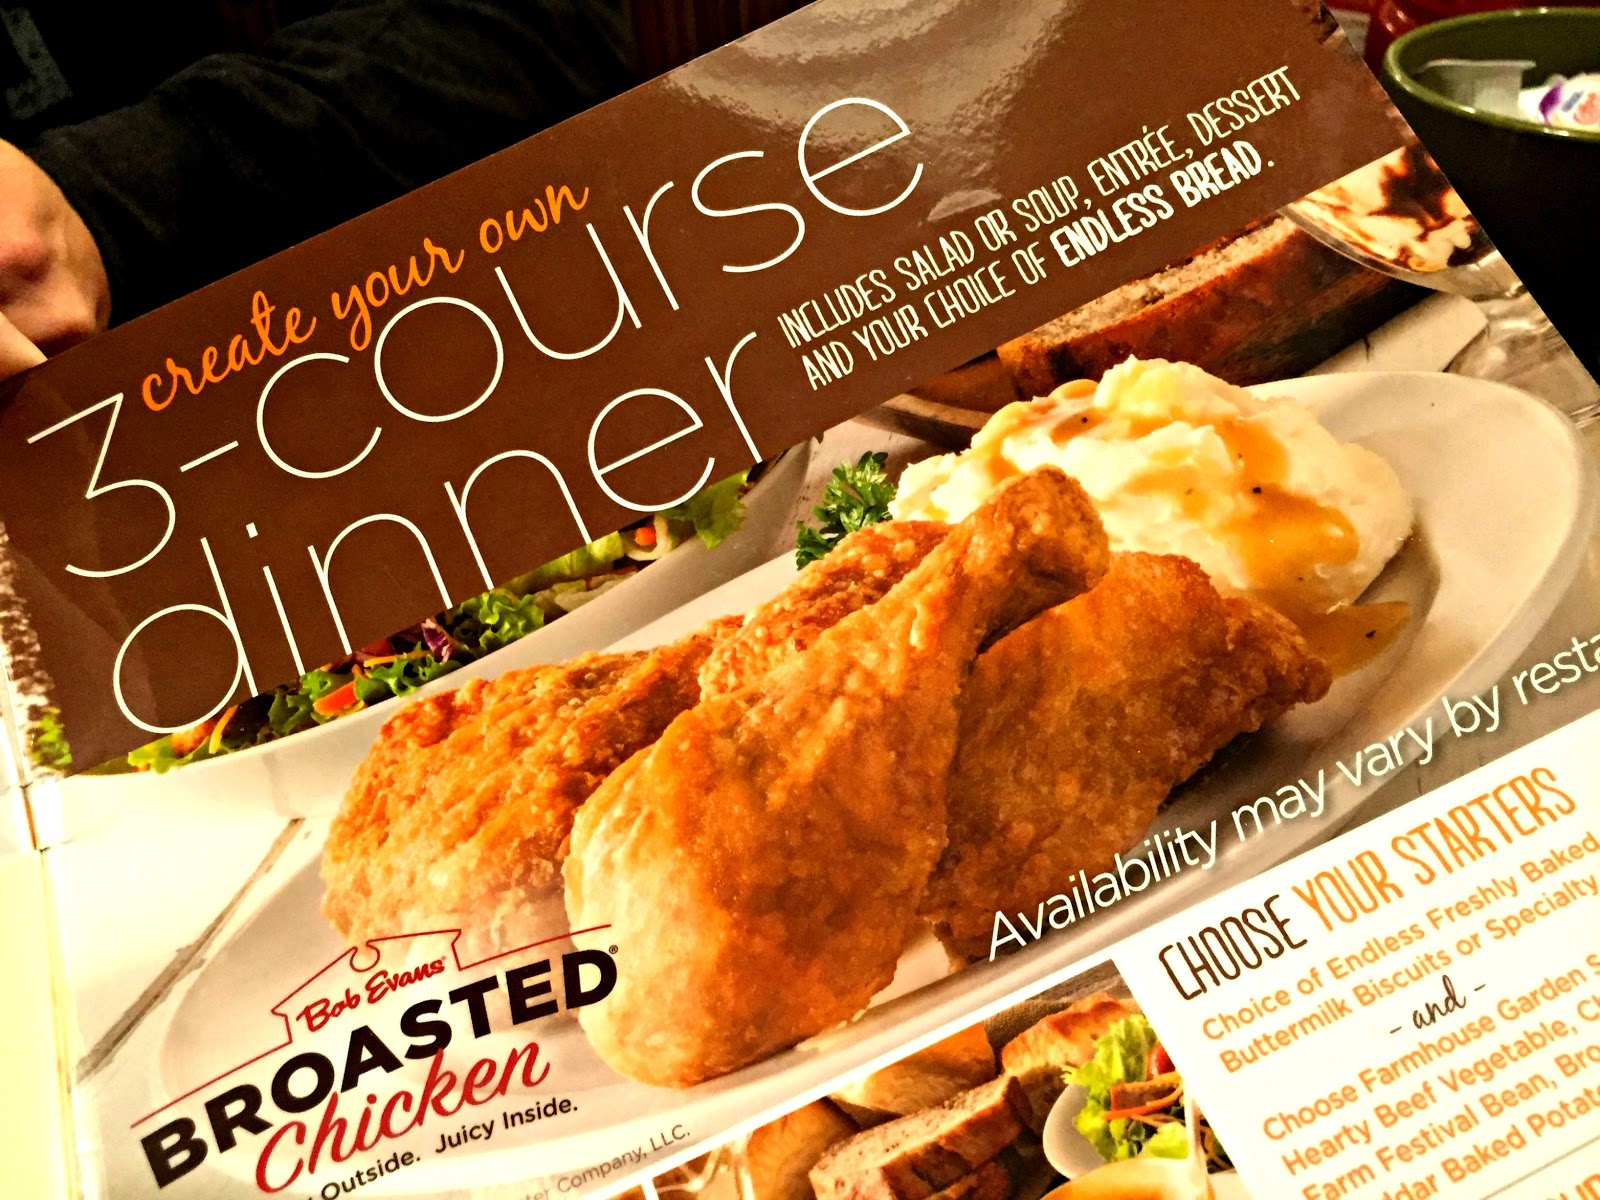 Restaurant Review: Bob Evans 3-Course Dinner | The Food Hussy!